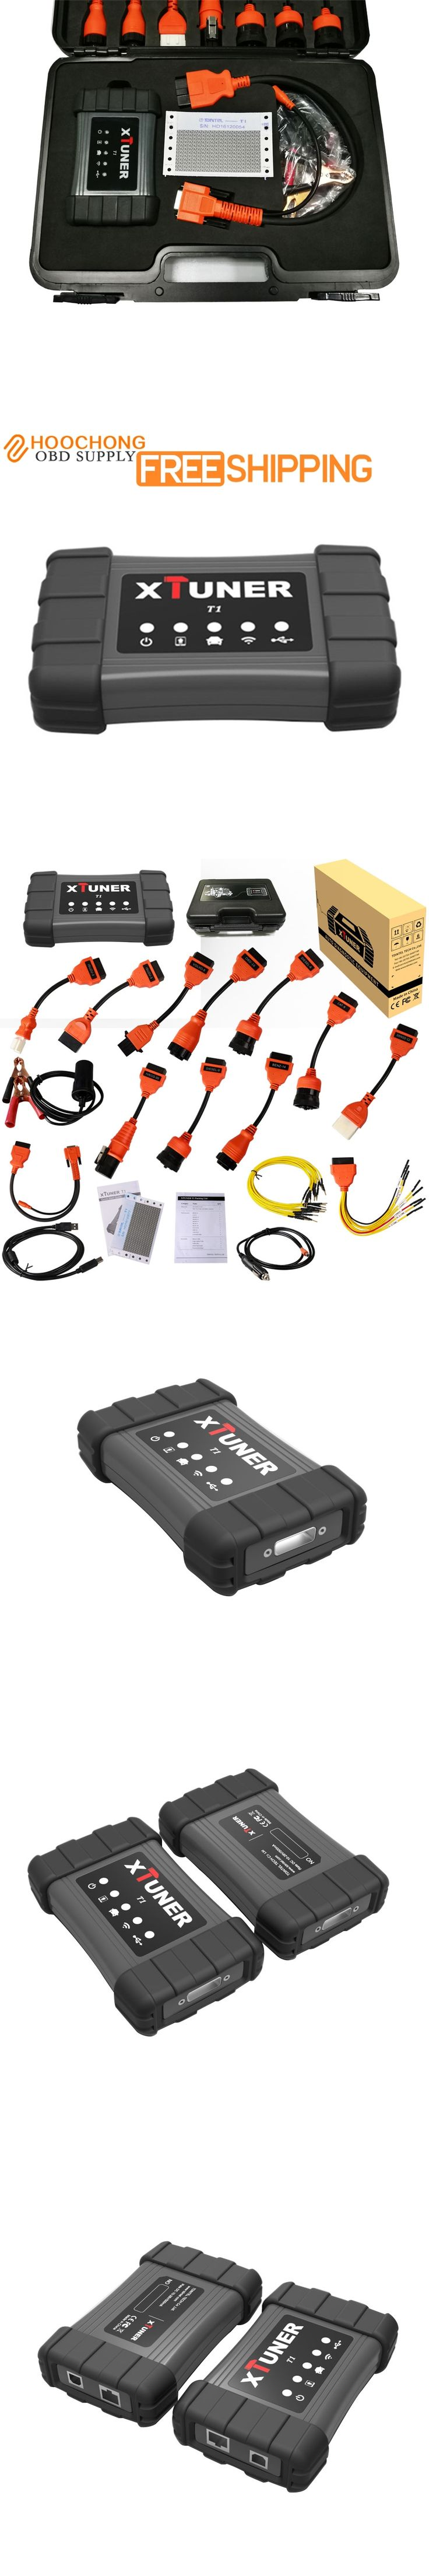 XTUNER T1 Heavy Duty Trucks Auto Intelligent Diagnostic Tool Support WIFI XTUNER T1